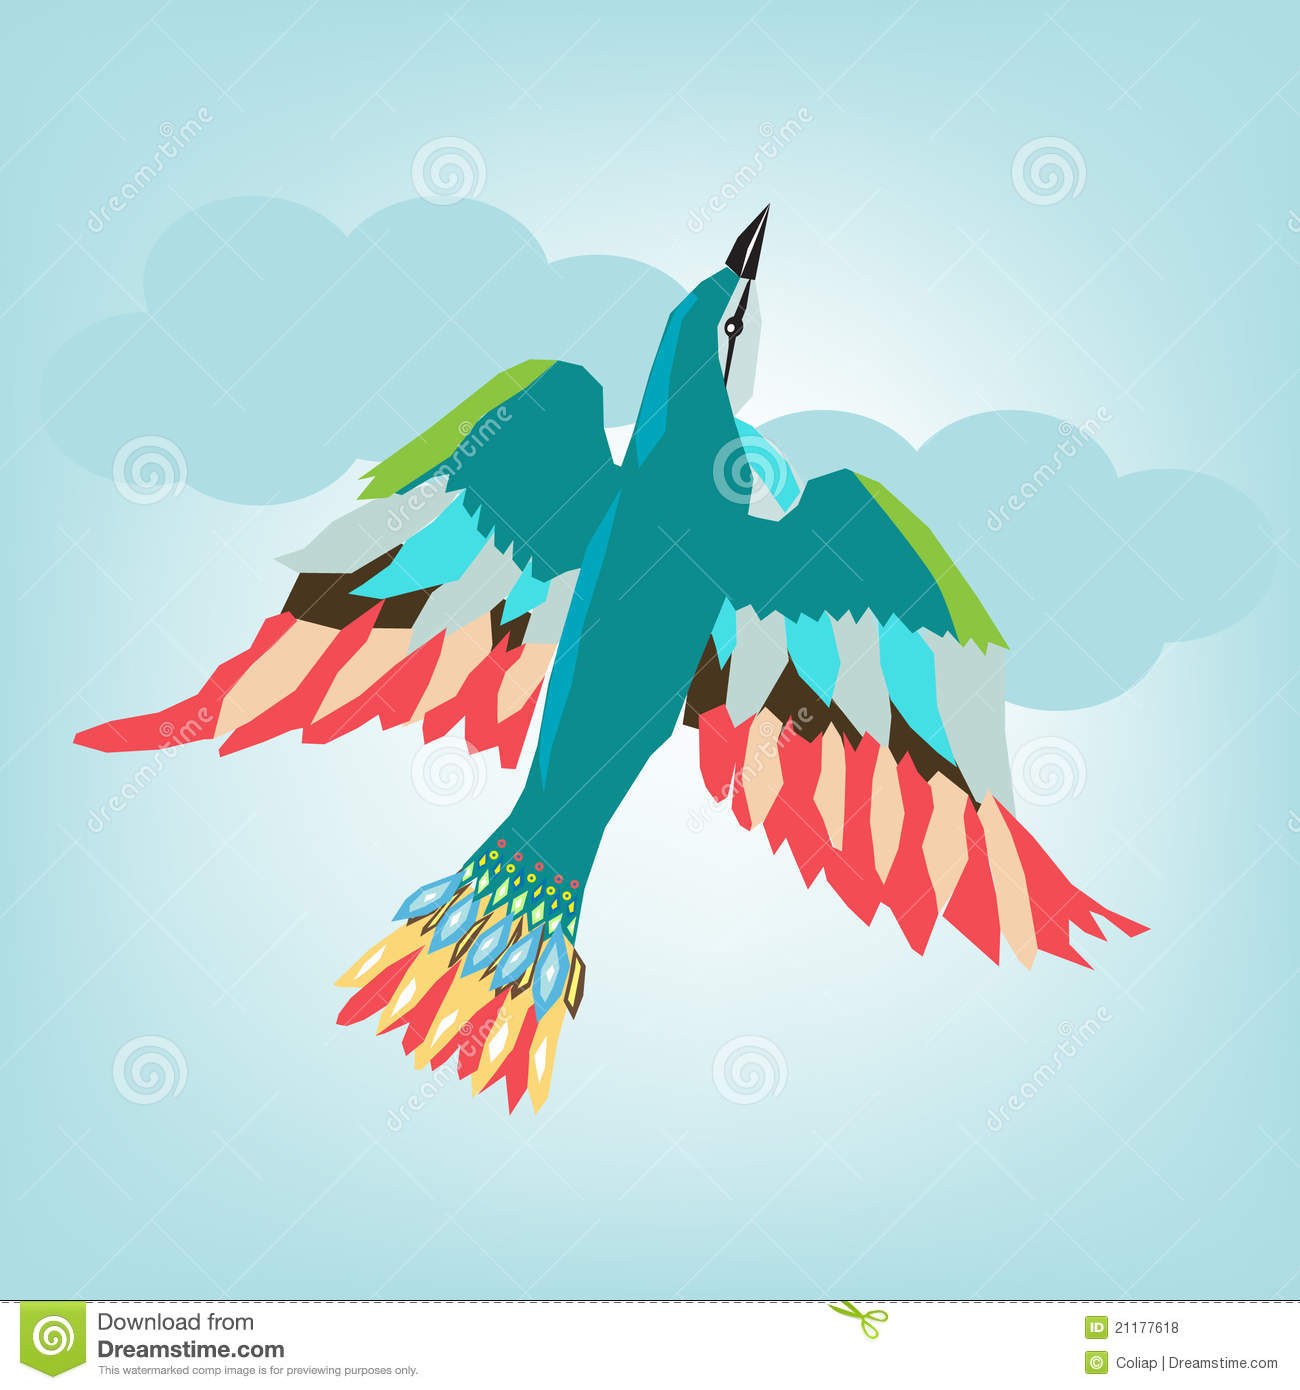 Colorful Bird Flying Stock Vector Illustration Of Line 21177618